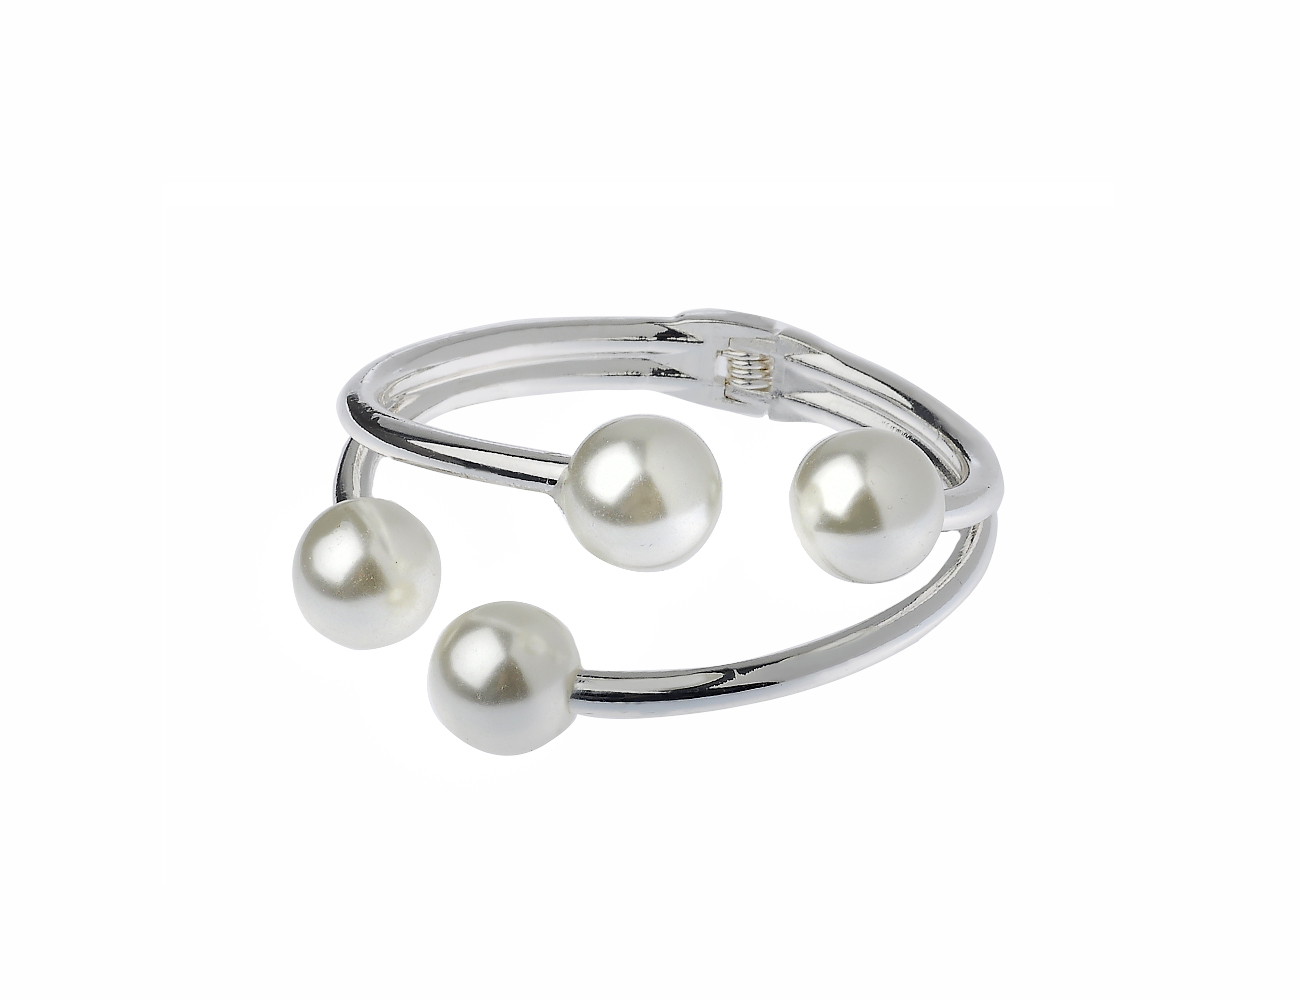 Silver Tone Imitation Pearl Hinged Cuff Bracelet